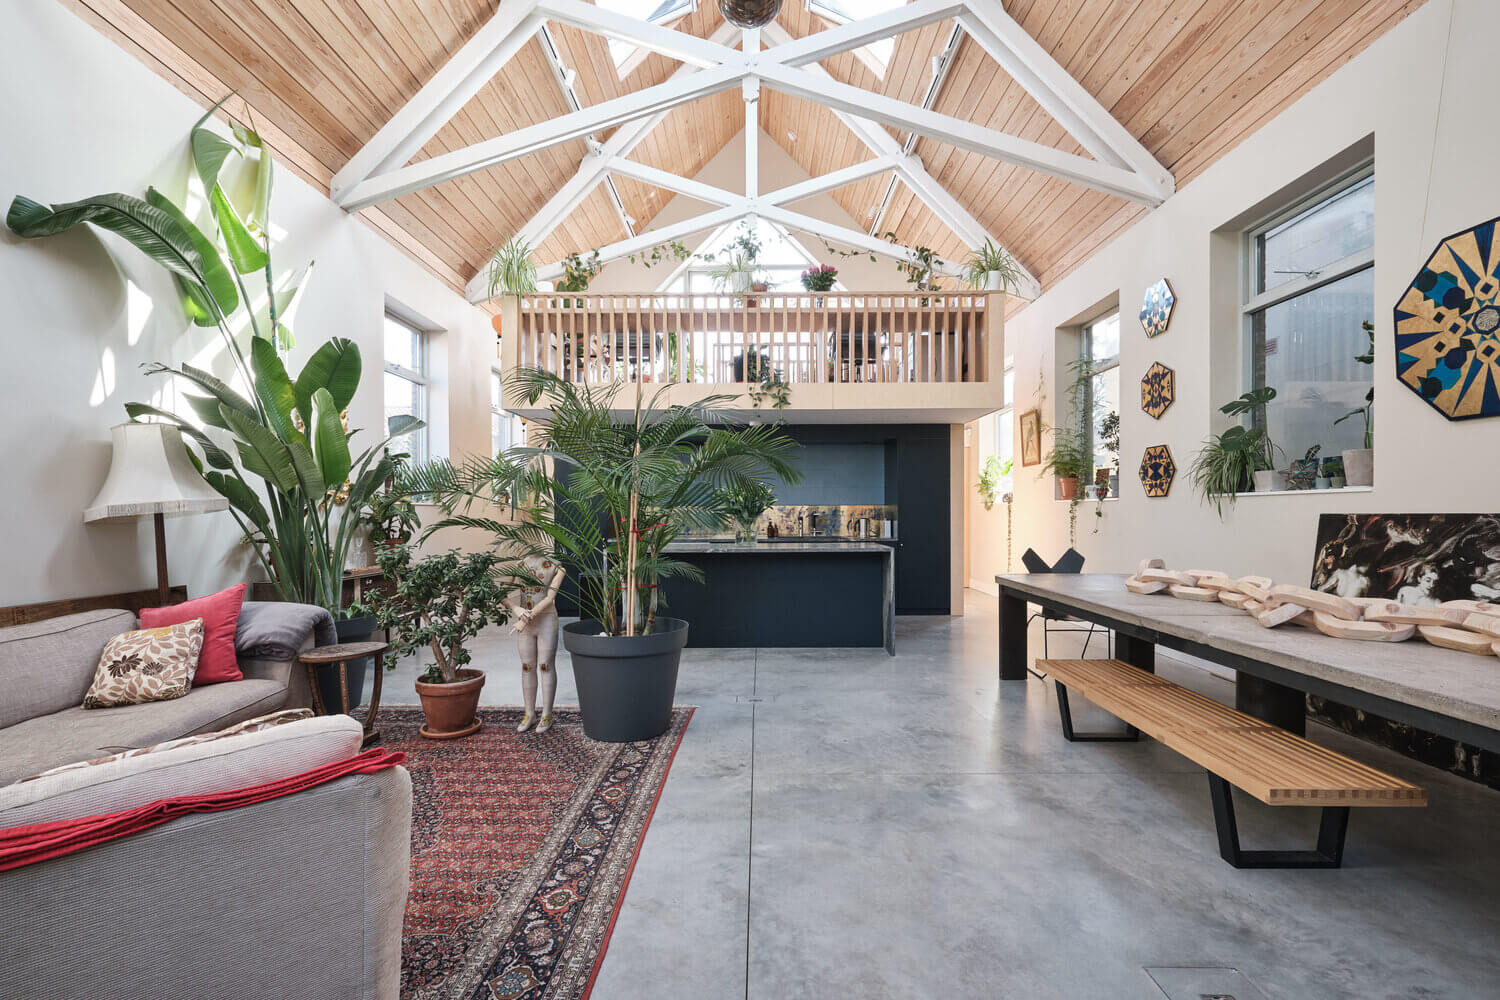 A Former Mission Hall Is Now A Creative Plant-Filled Home